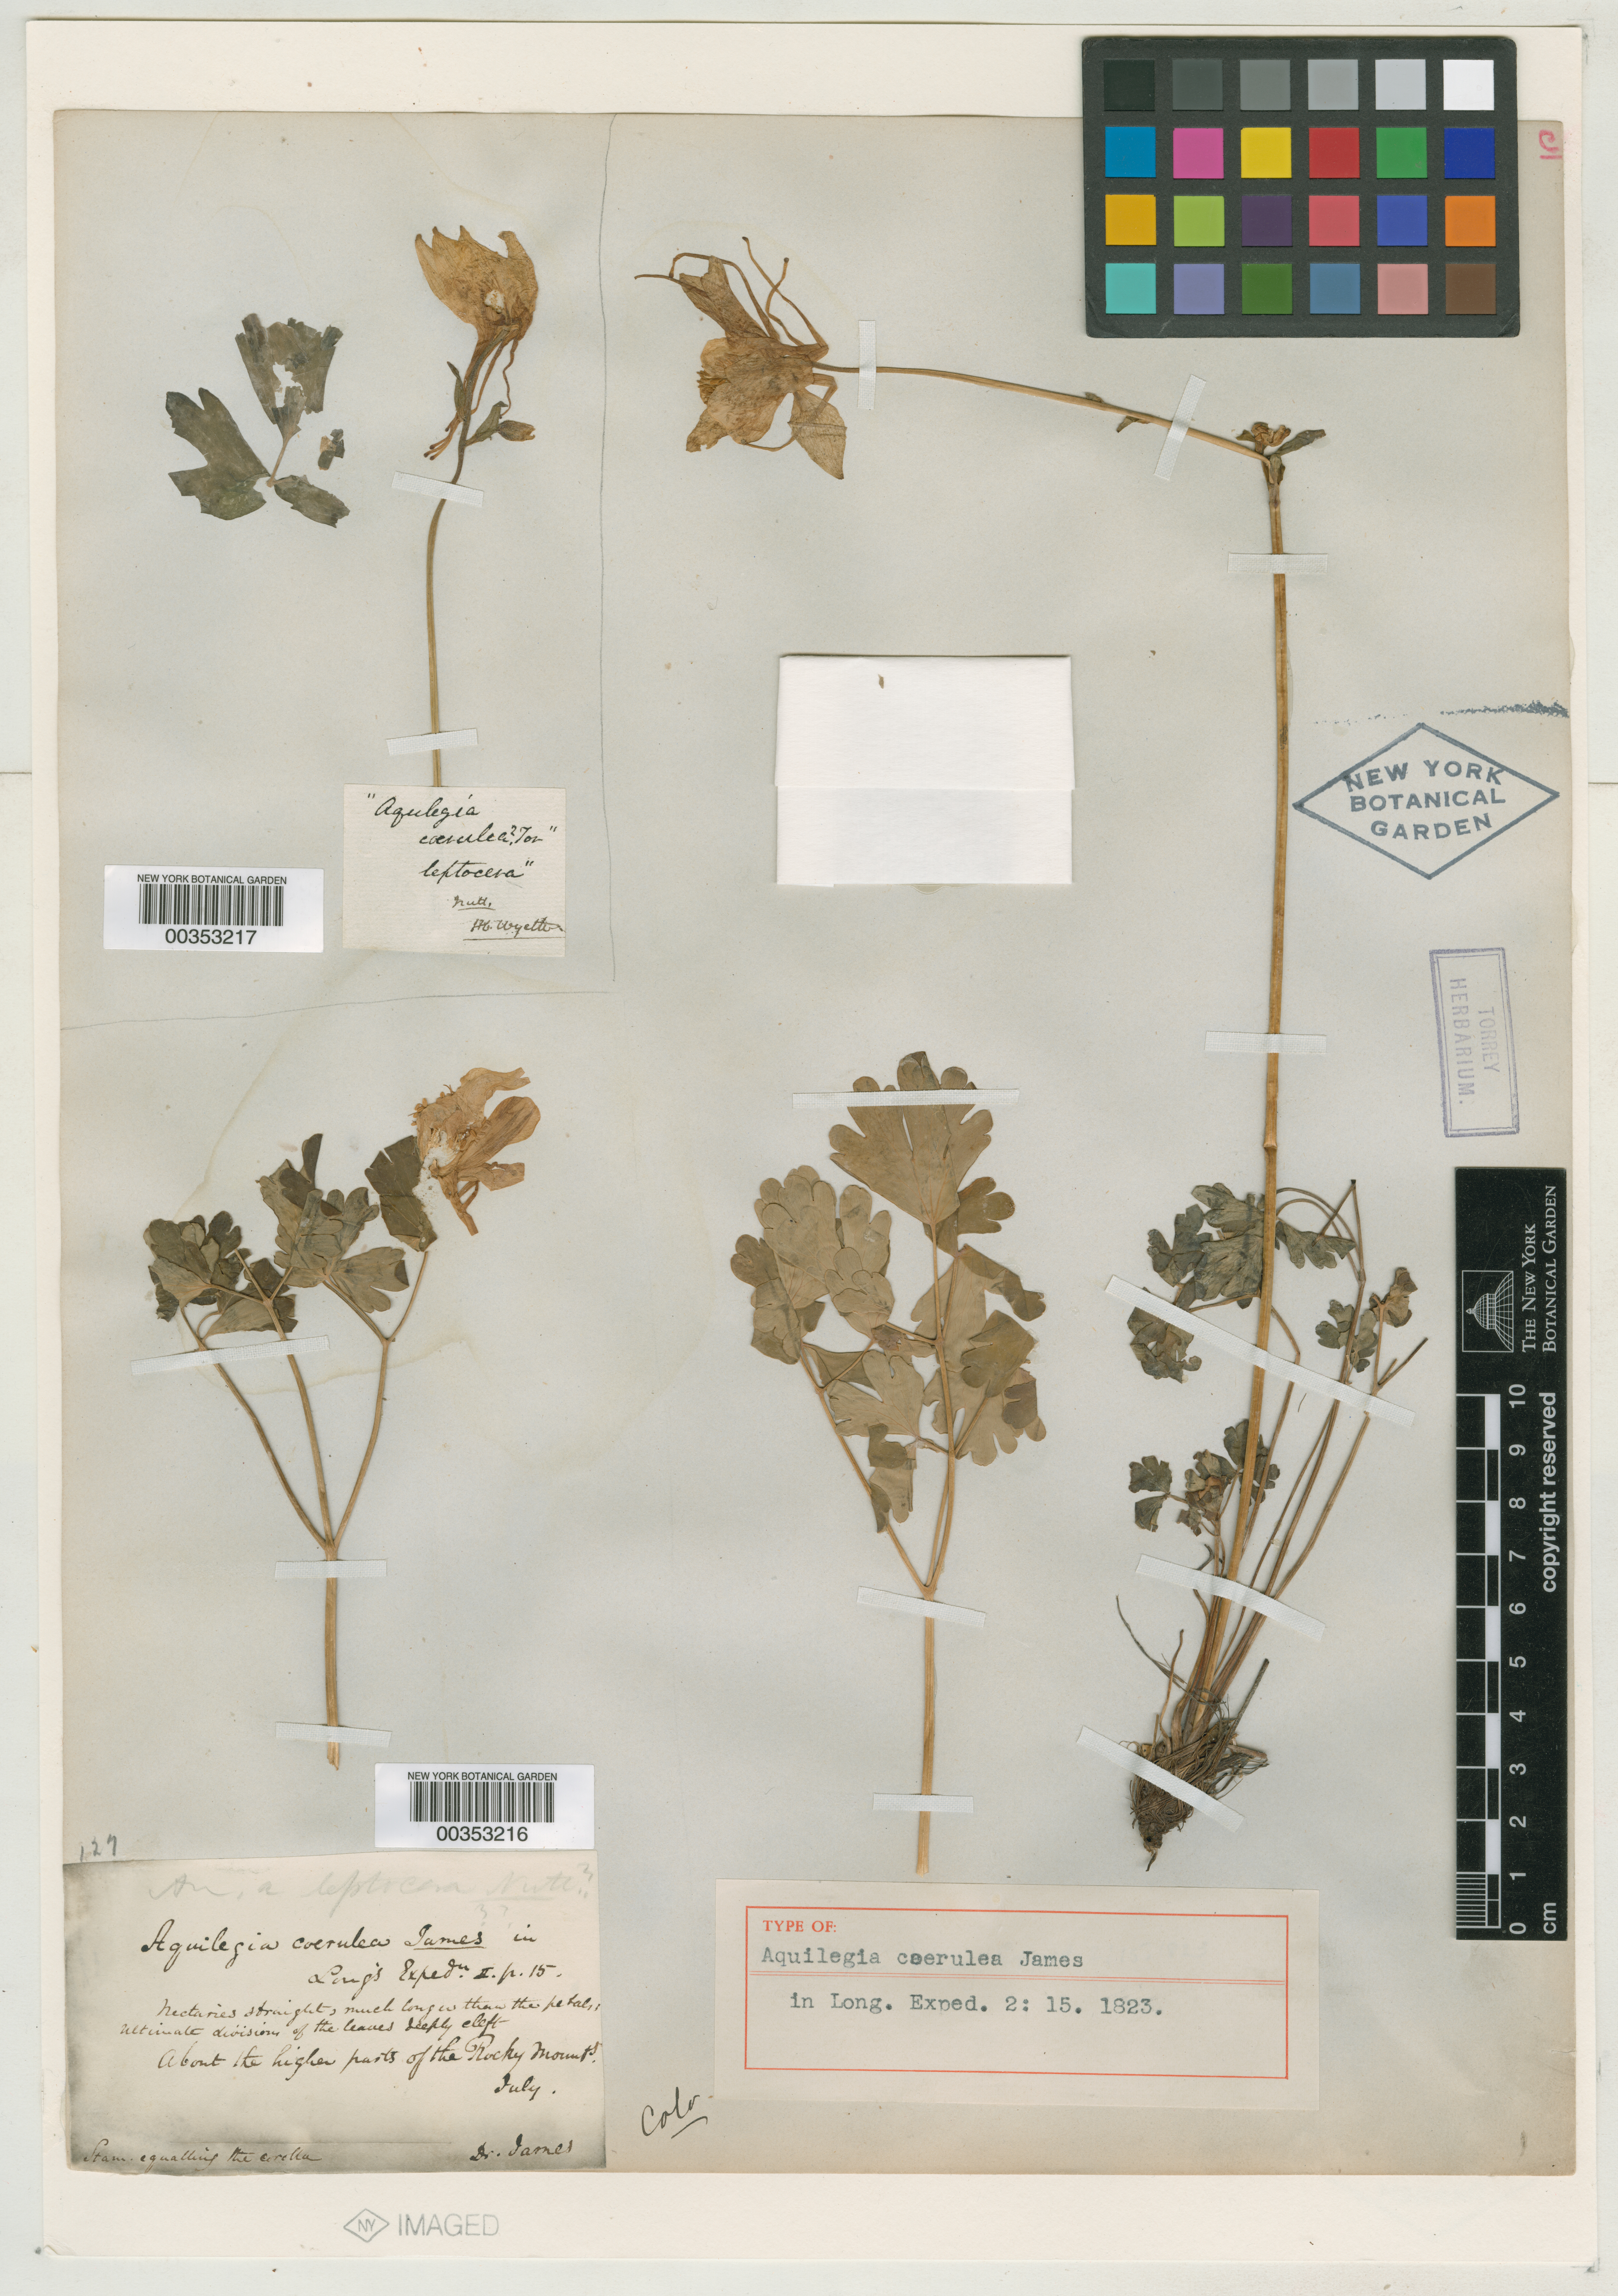 "Image of the specimen page for Edwin James's specimen of Aquilegia coerulea James from New York Botanical Garden. This image shows dried leaves, roots, and stems of the plant, carefully taped to a page which also has a handwritten note by James, identifying the plant, as well as a ruler showing the plant sample sizes in centimeters. The page is stamped ""New York Botanical Garden."""